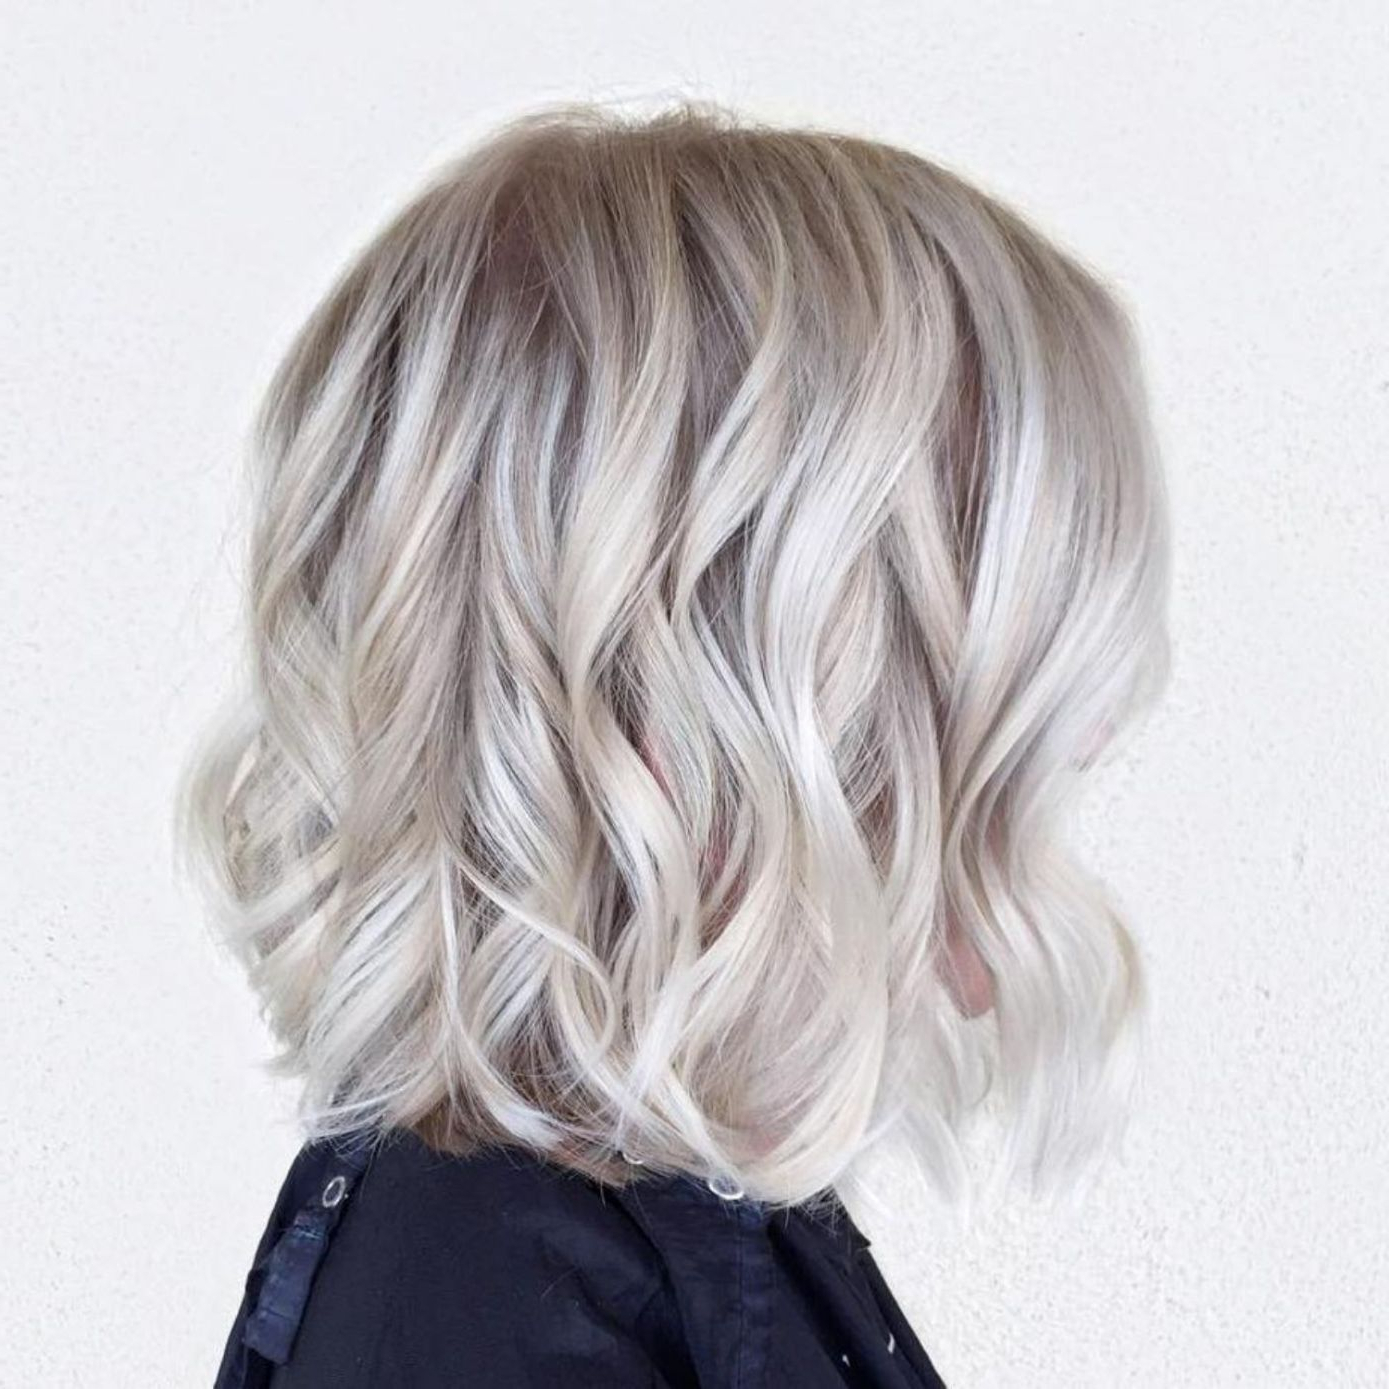 70 Winning Looks With Bob Haircuts For Fine Hair In 2018 | Hair Throughout White Blonde Curly Layered Bob Hairstyles (View 10 of 25)